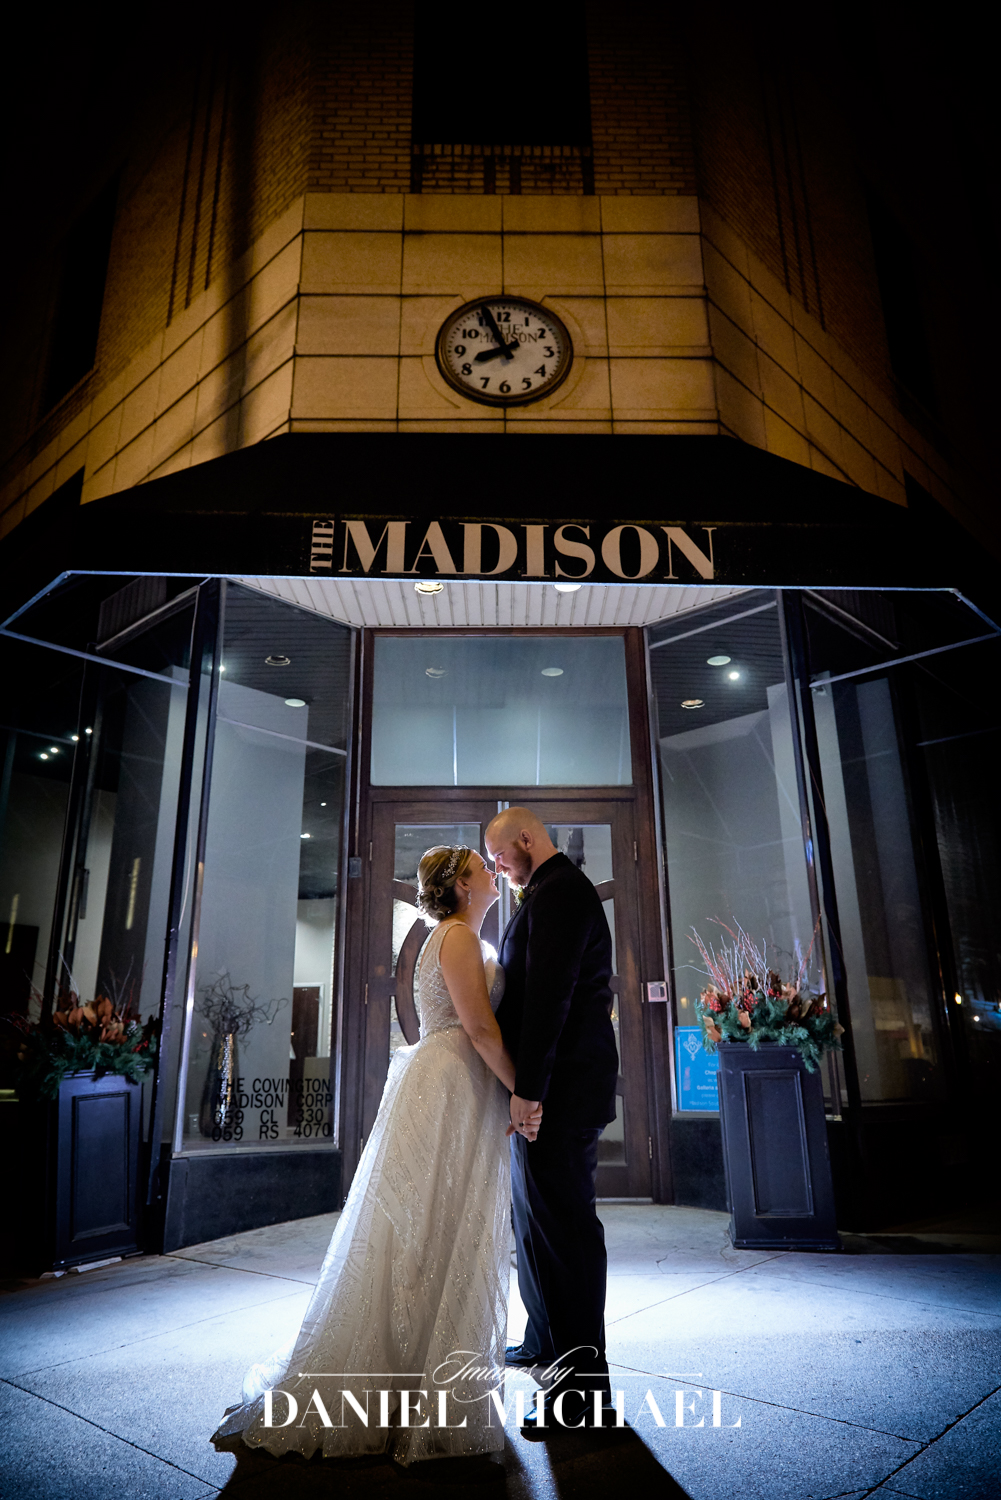 The Madison Wedding Photo